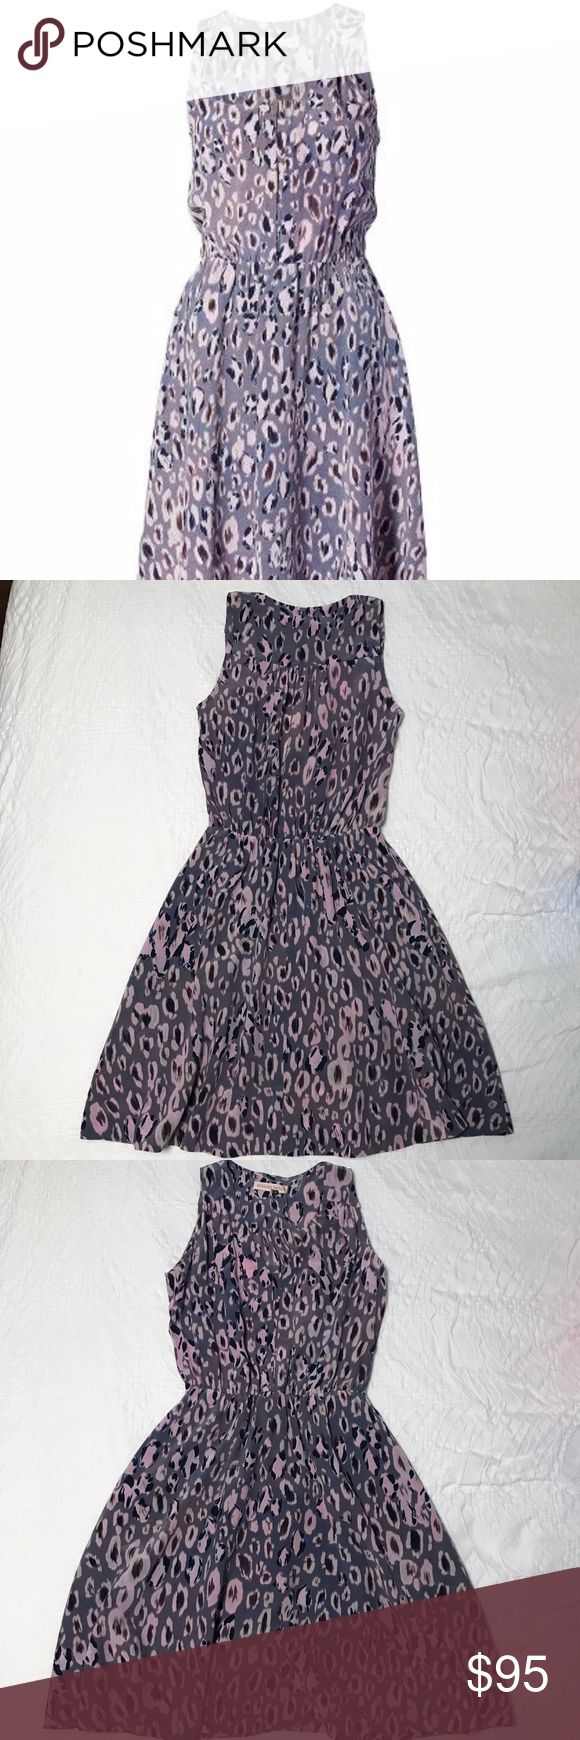 NWT Rebecca Taylor Ombre Cheetah Dress Size 2 NWT Rebeca Taylor Ombre Cheetah dress (#214903D349) in women's size 2.  This beautiful lavender cheetah-print v-neck dress has subtle pleating that adds soft dimension.  It has an elasticized waist and is 100% silk with 100% polyester lining.  It is very flattering and is the perfect piece for day or night.  Comes from a pet-free and smoke-free home. Rebecca Taylor Dresses